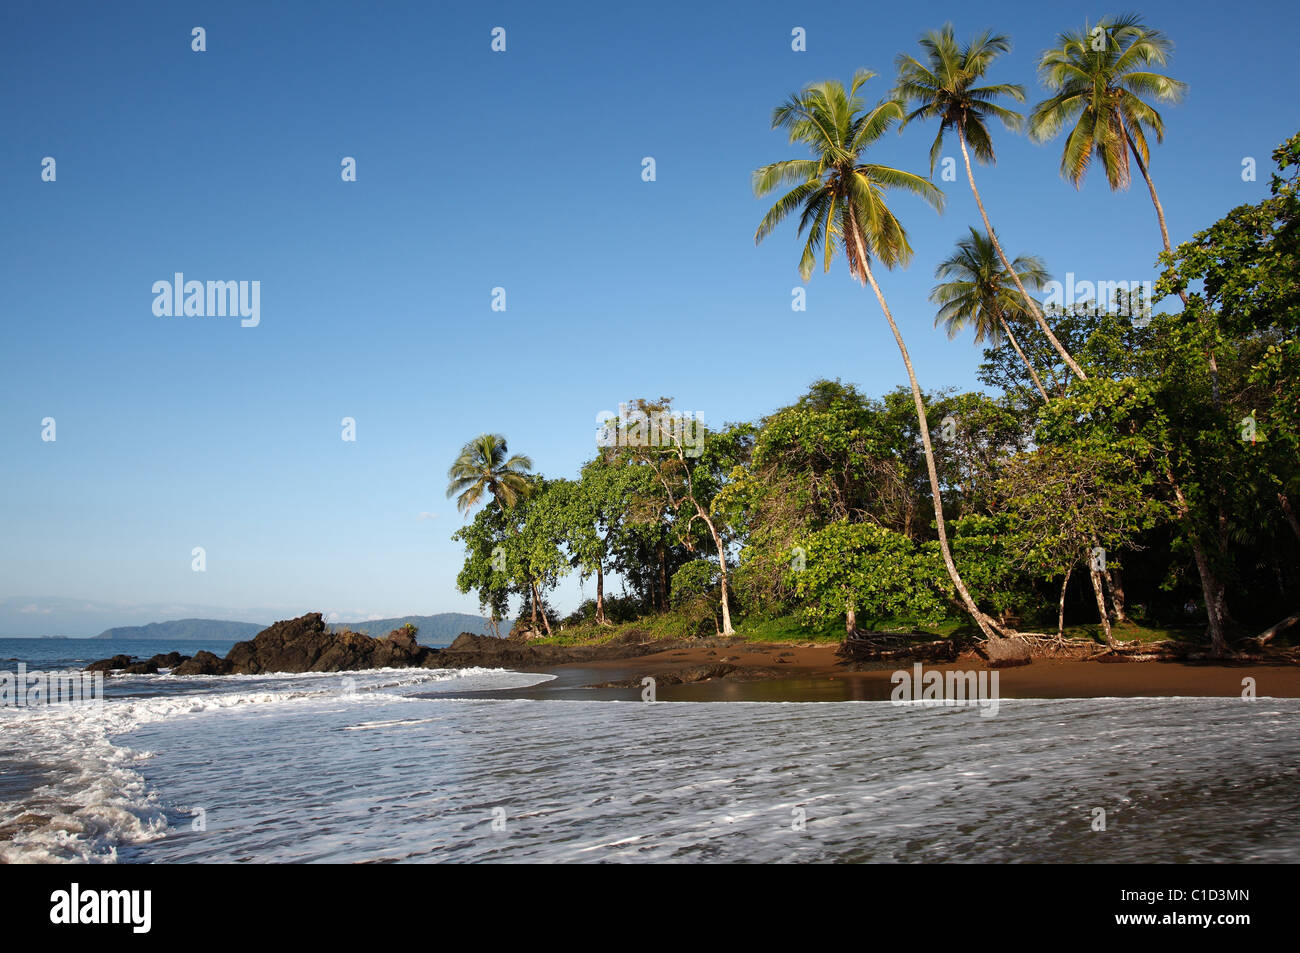 A tropical beach near Drake Bay along the trail to Corcovado National Park on the Osa Peninsula, Costa Rica - Stock Image